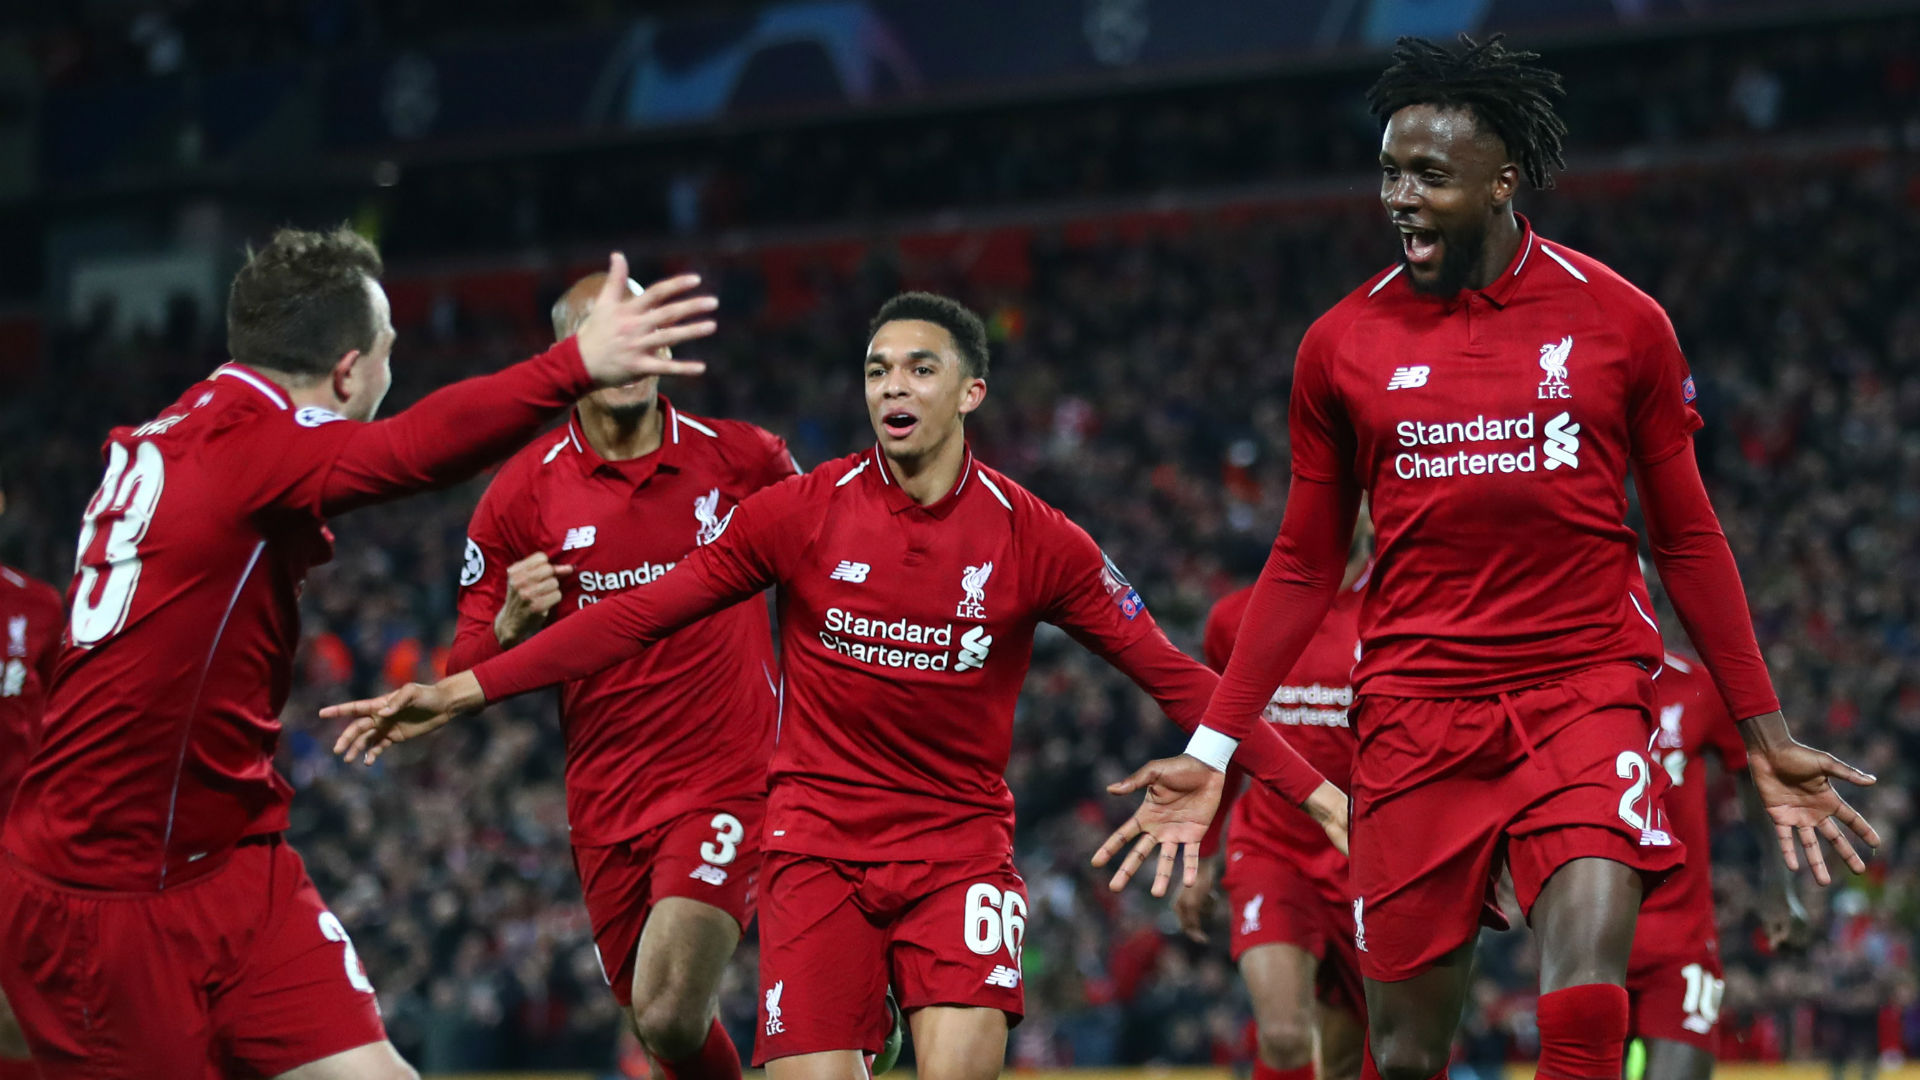 How To Watch Premier League In The Usa Full Tv Schedule For 2020 Epl Season On Nbc Channels Sporting News